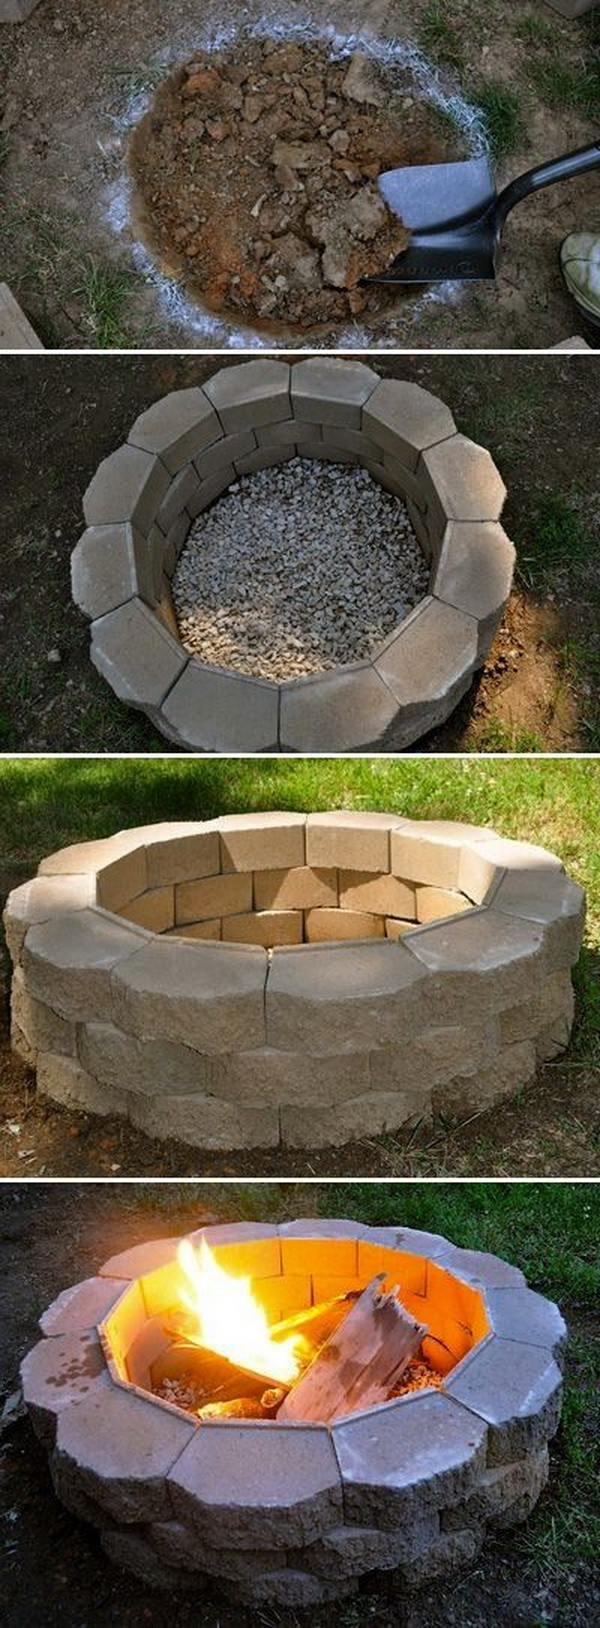 Backyard Fire Pit Ideas Diy  20 DIY Fire Pits for Your Backyard with Tutorials